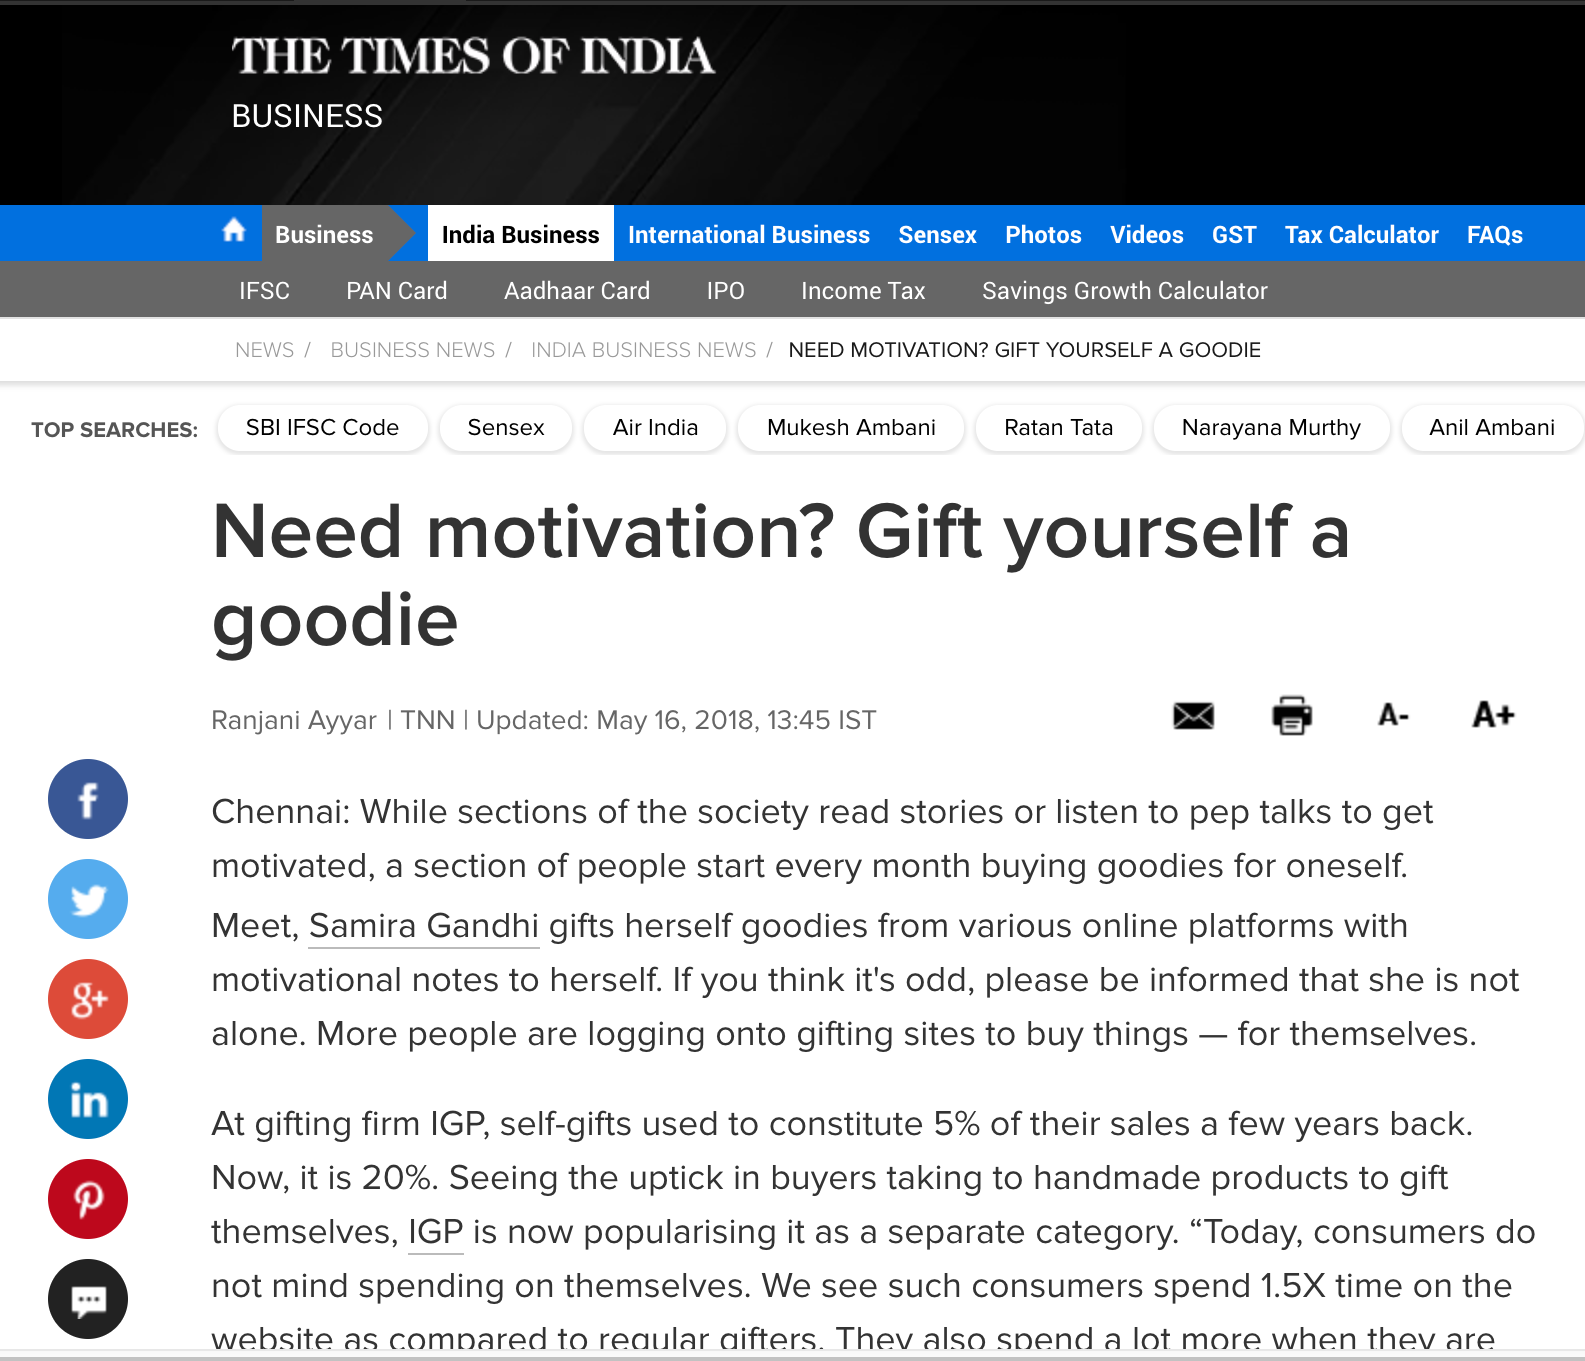 The Times Of India | Need motivation? Gift yourself a goodie